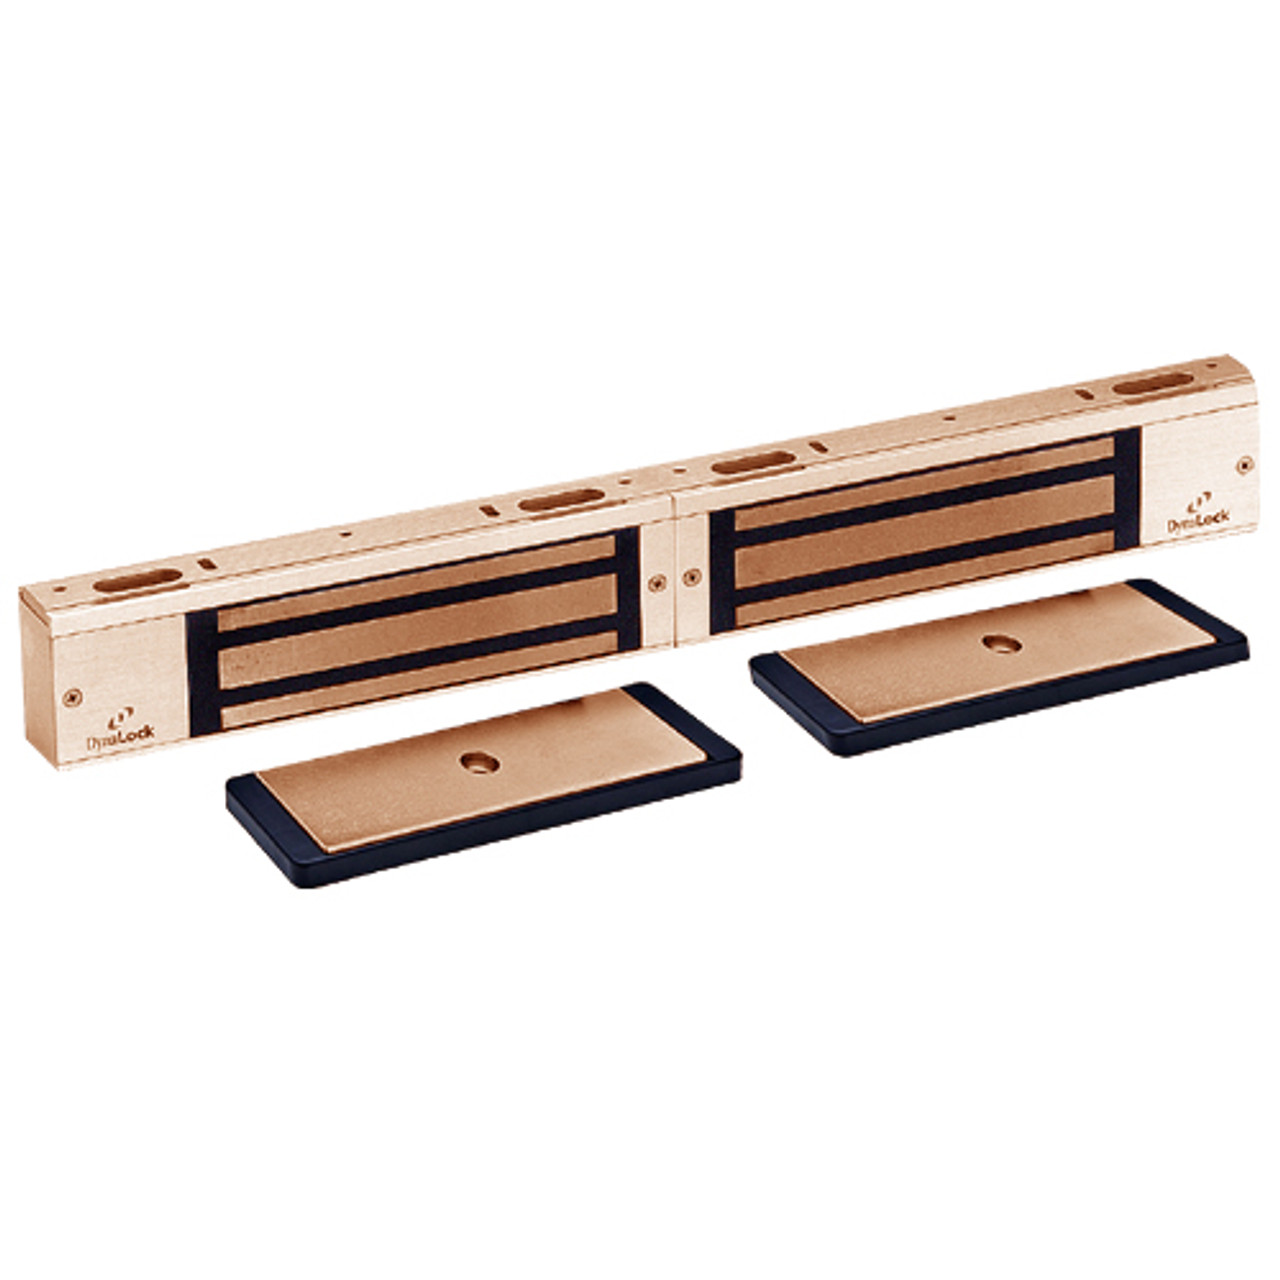 3002TJ32-US10-HSM2 DynaLock 3000 Series 1500 LBs Double Electromagnetic Lock for Inswing Door with HSM in Satin Bronze